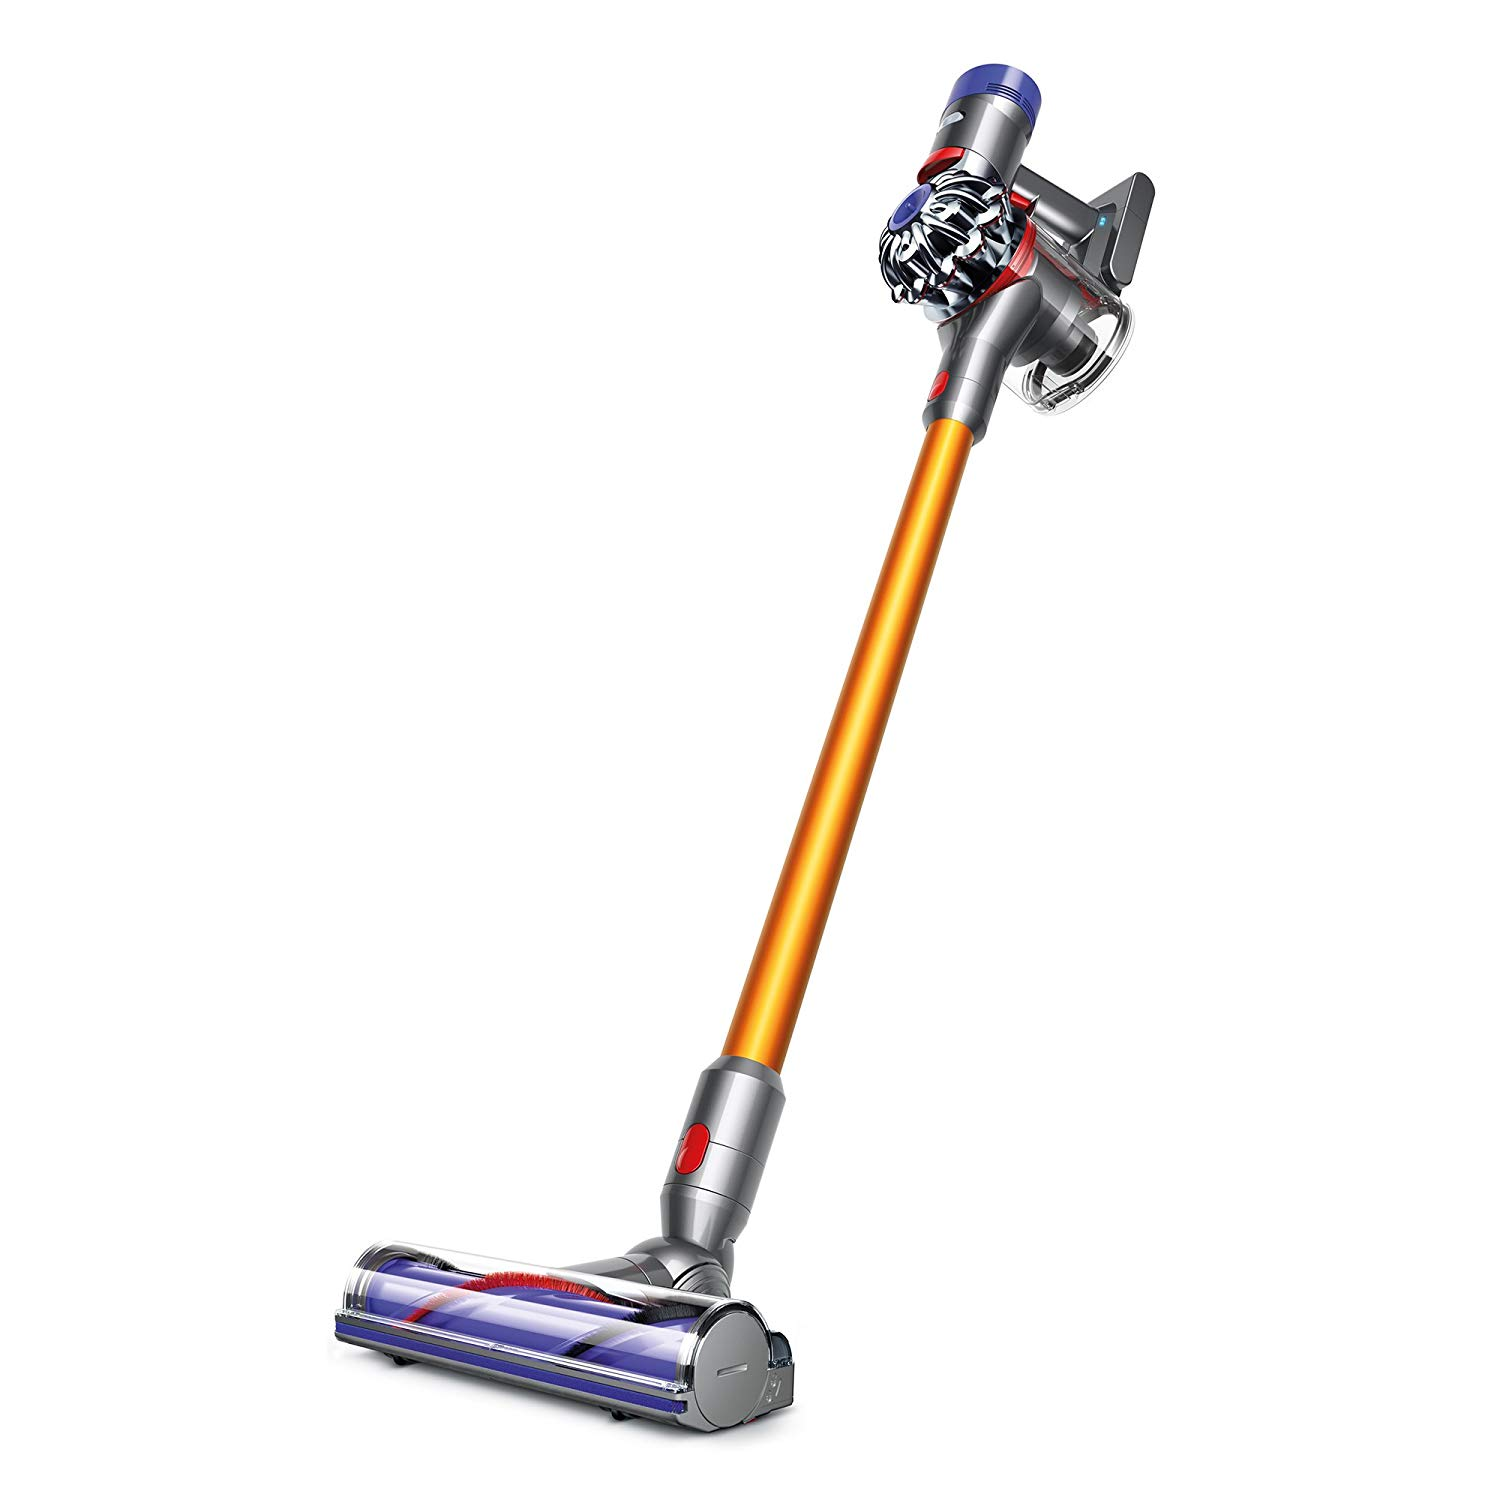 I am so obsessed with this cordless Dyson vacuum, that I use it almost everyday (just because). It's light weight, hassle-free without any cord, comes with a variety of cleaning heads for any area or crevice, and transforms to a hand-held vacuum. You need this vacuum in your life- you're home will be so clean because it's so quick and easy to use!